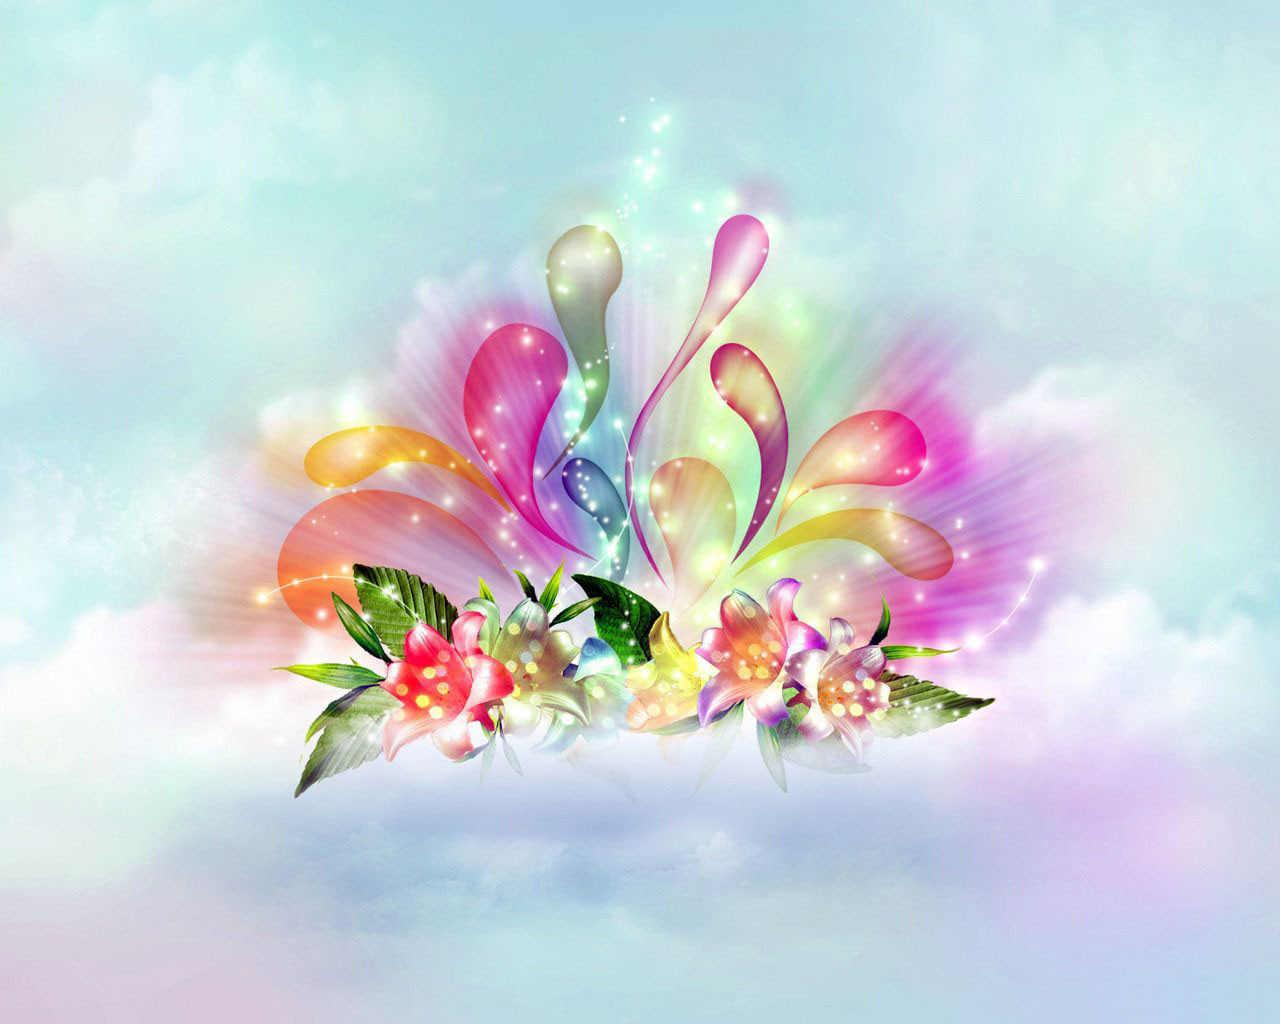 Light Color Wallpapers For Desktop 3D Full HD Wallpapers Points 1280x1024